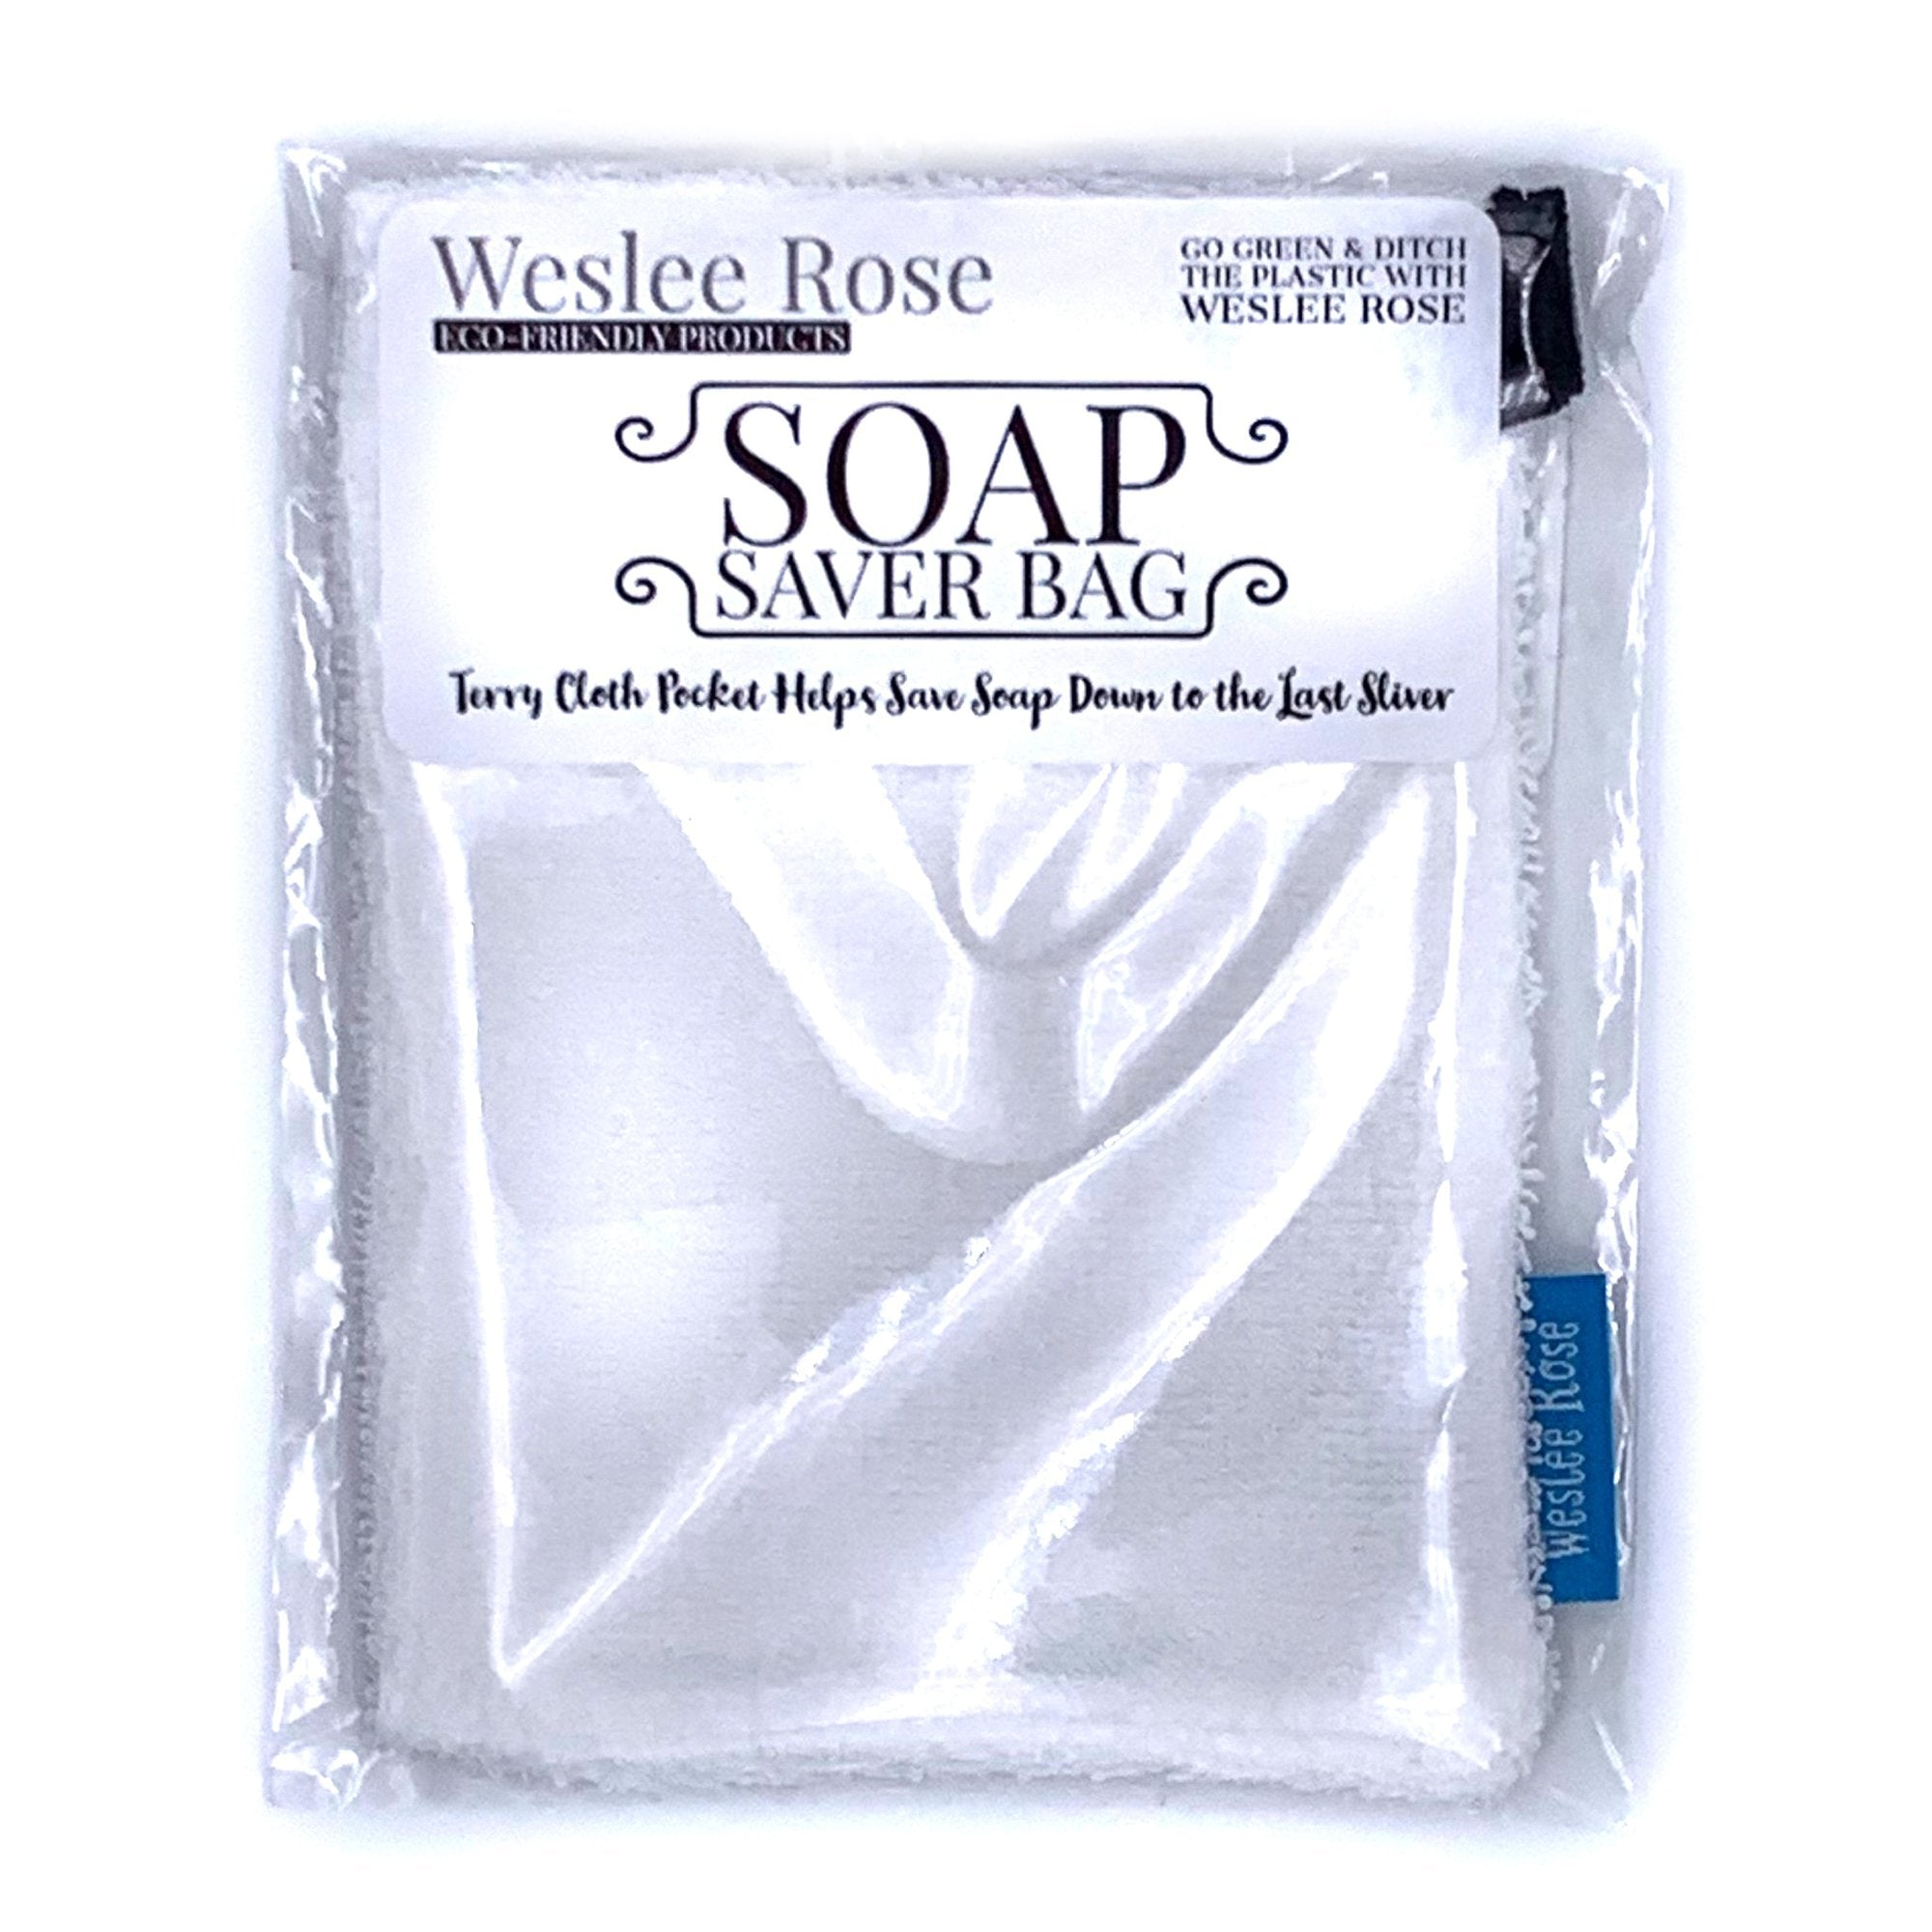 Soap saver bag made with 100% cotton, 100% compostable bags